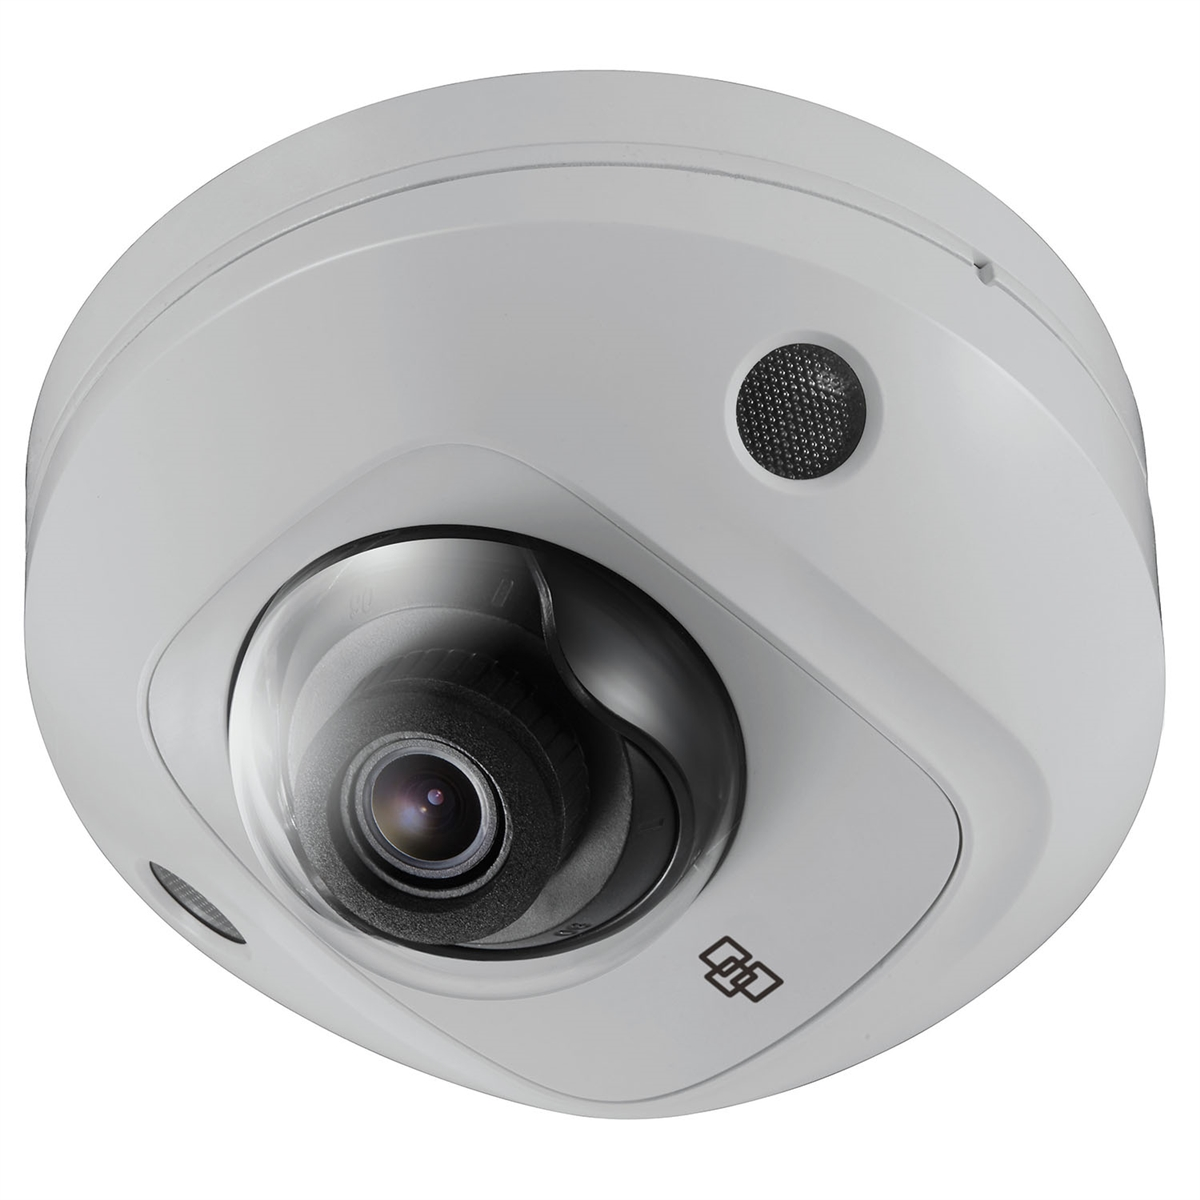 TVW-5602 INTERLOGIX TruVision 2MPx, H.265/H.264, IP Fixed Lens Wedge, 2.8mm, True D/N, WDR, 10m IR, Micro SD/SDHC/SDXC Slot, Audio, Alarms, PoE (802.3-af)/12VDC, IP66, IK8, Gray ************************* SPECIAL ORDER ITEM NO RETURNS OR SUBJECT TO RESTOCK FEE *************************